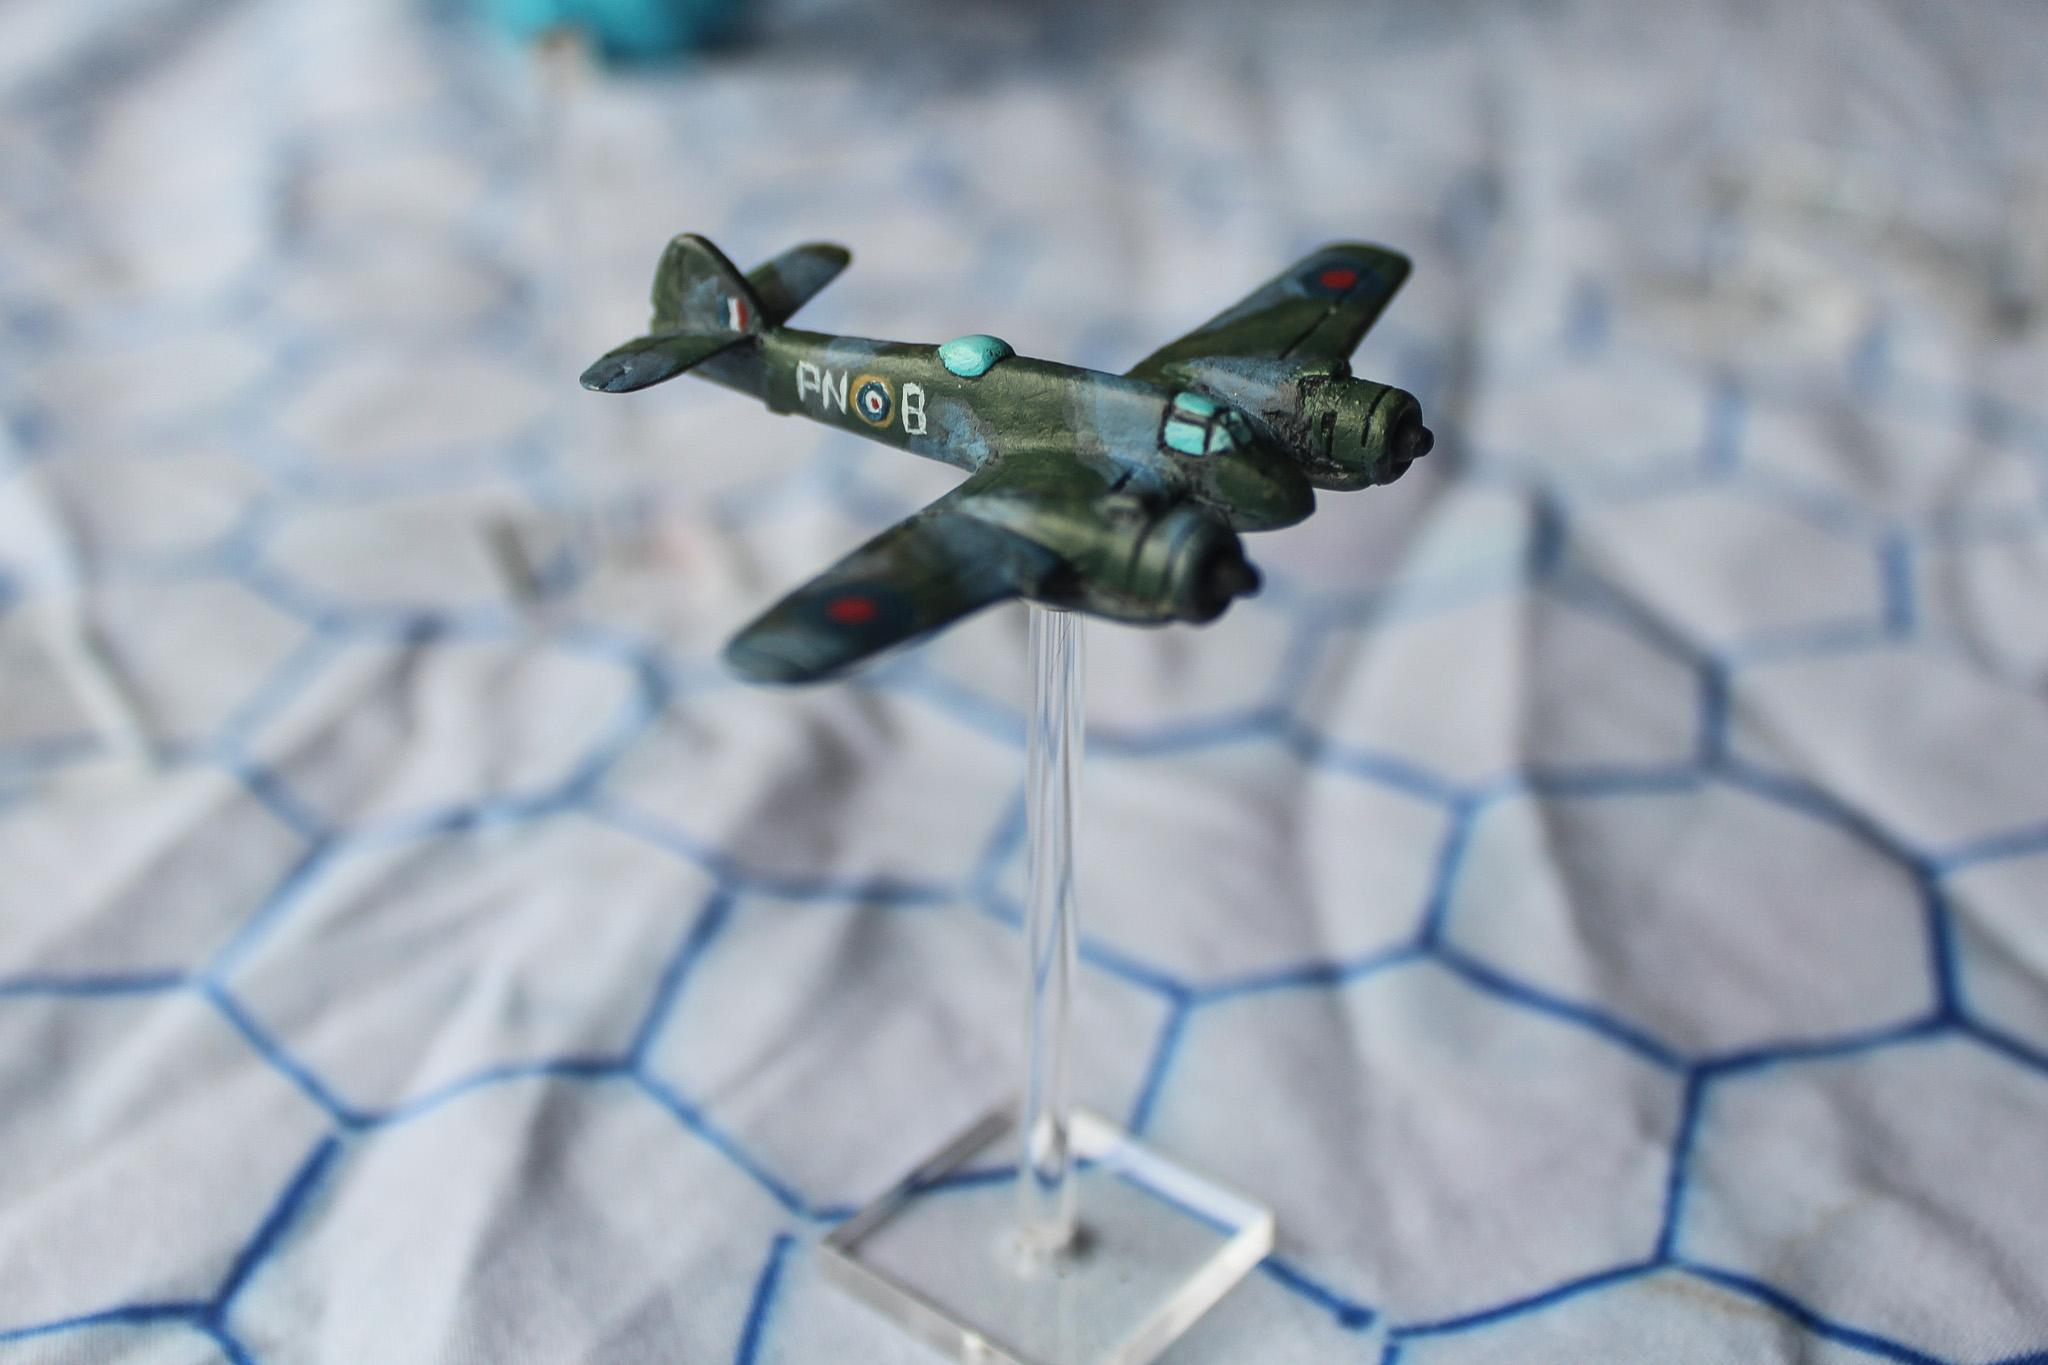 1:300, 1:300 Scale, 6mm, 6mm Scale, Air Combat, Airborne, Aircraft, Airplane, Aviation, Beaufighter, Check Your 6!, Finland, Fliers, French, Germans, Imperial Japan, Italian, Luftwaffe, Plane, Planes, Raf, Republic Of China, Soviet, Usaaf, World War 2